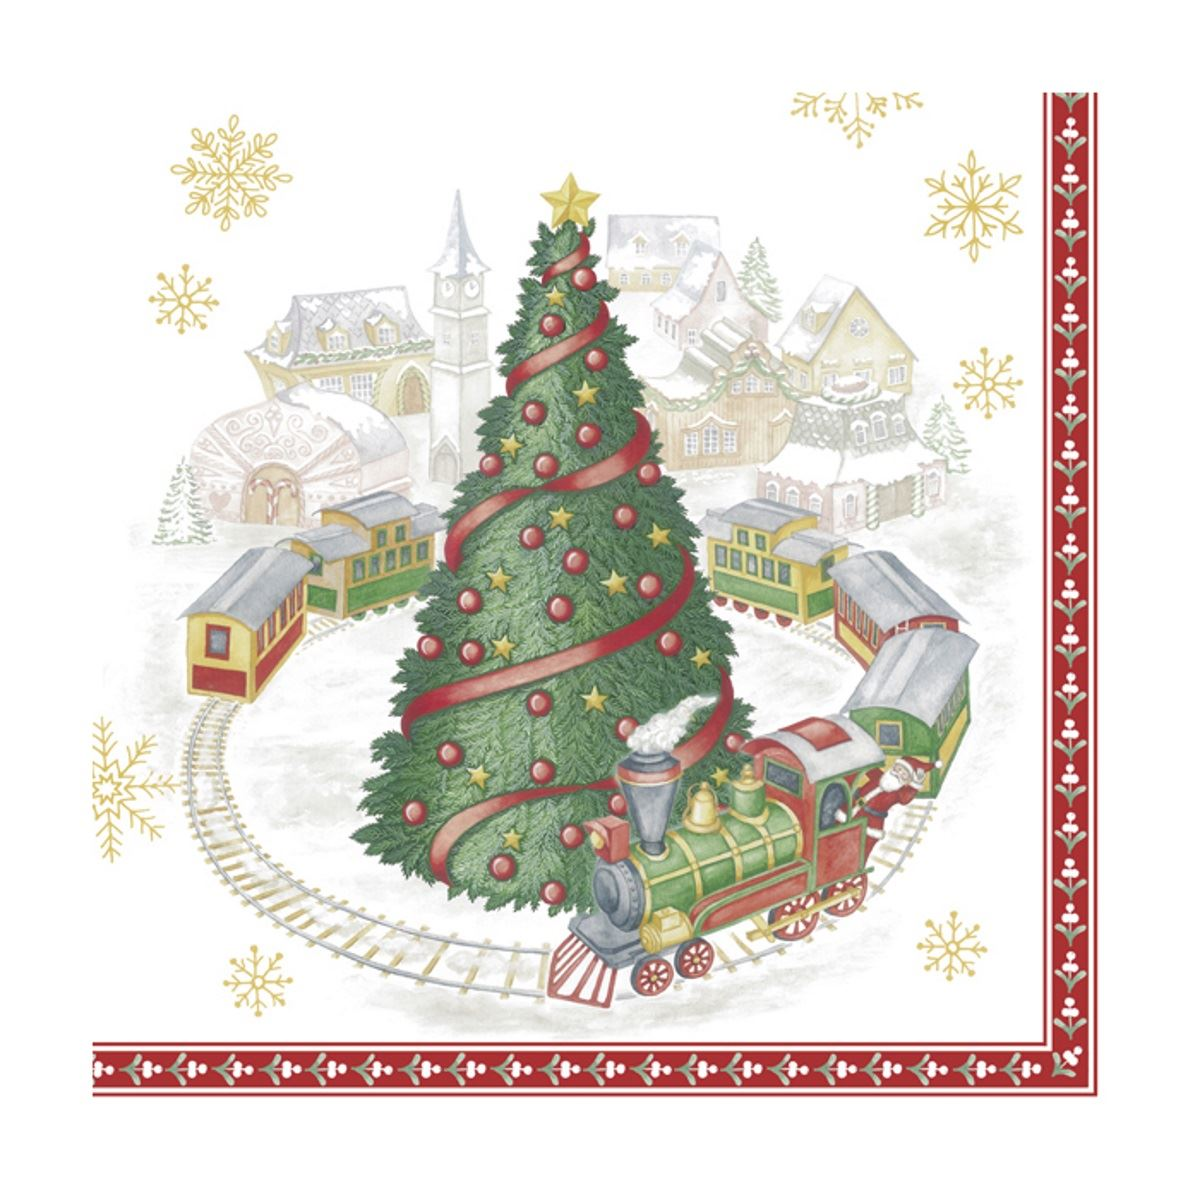 Christmas Napkins.Details About Paper Christmas Napkins Xmas Train In Town Disposable Luncheon Party Serviettes